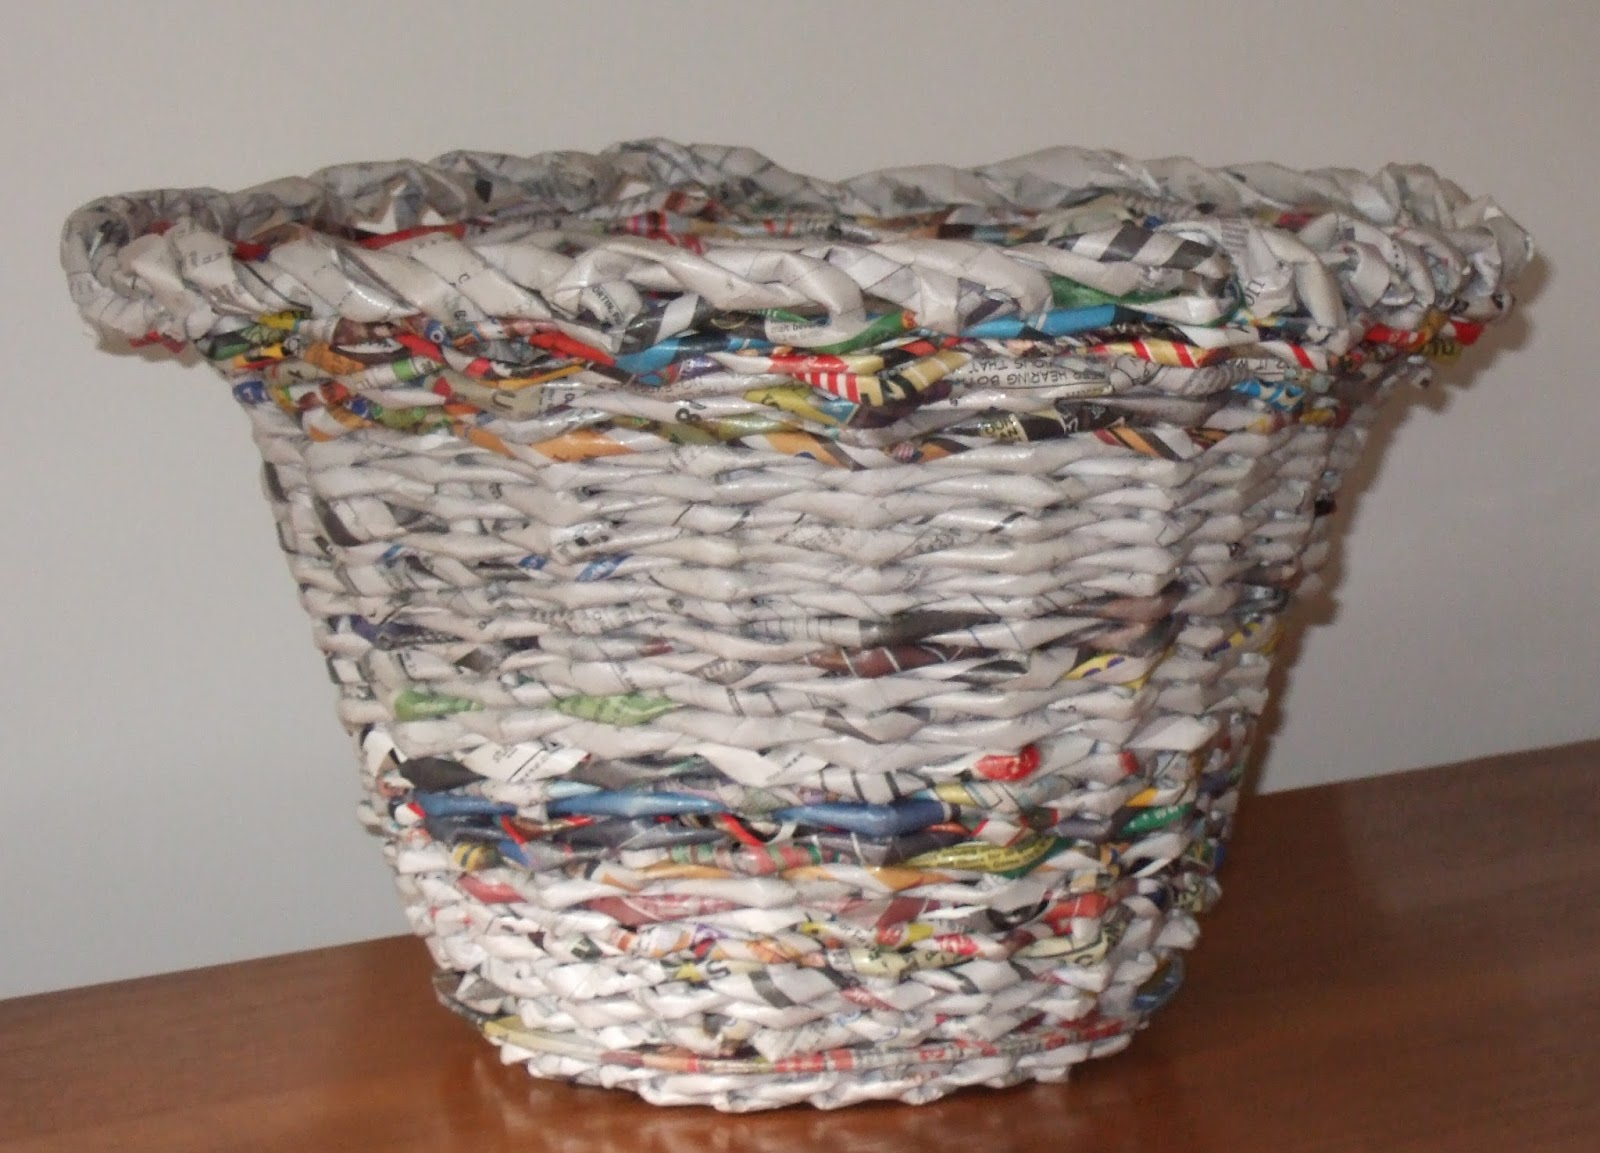 How to recycle recycled waste paper basket for Waste things making